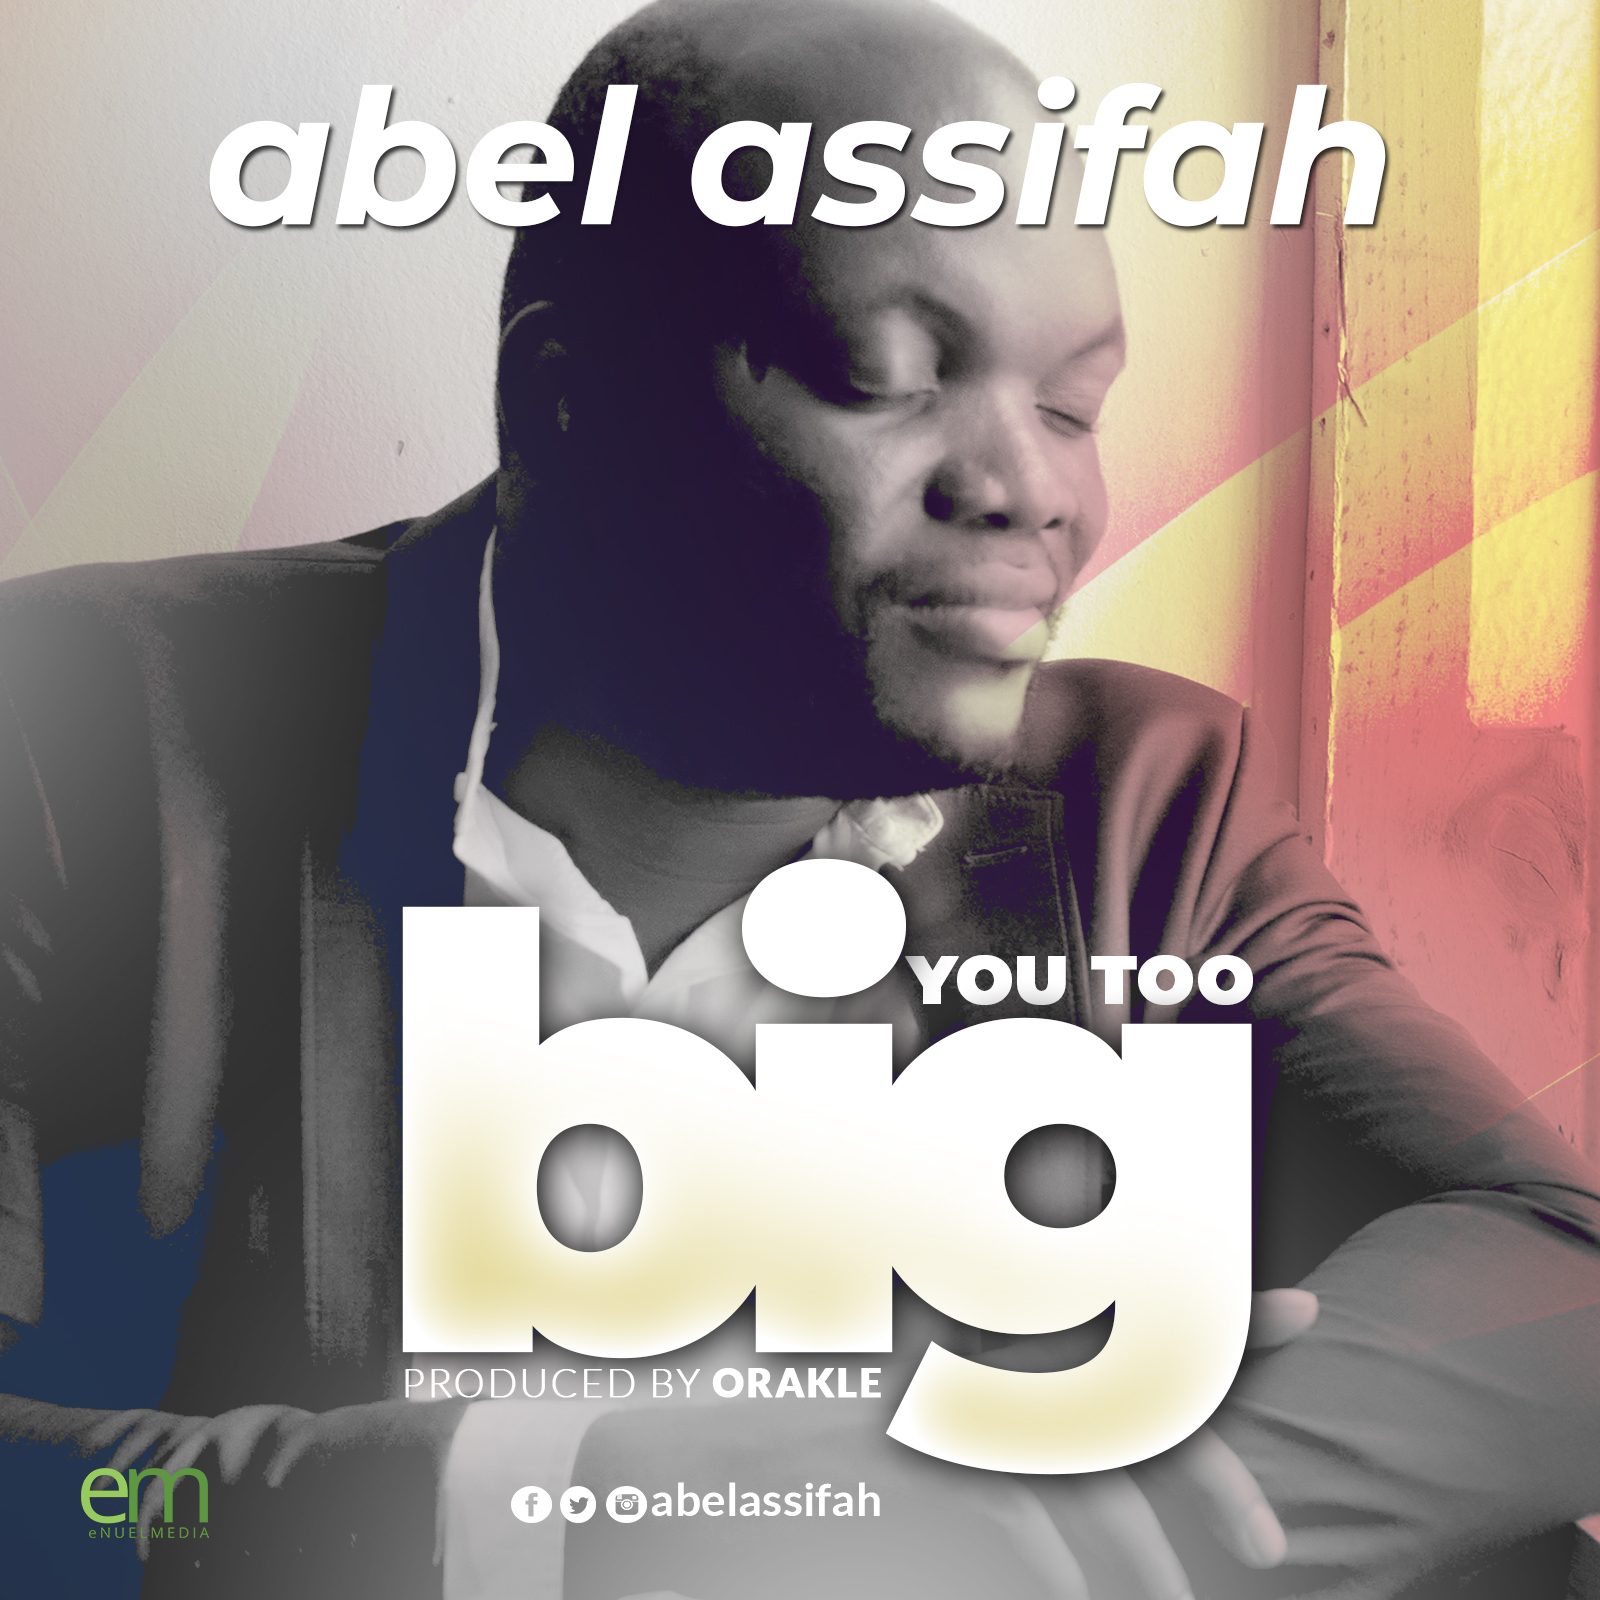 You are too Big - Abel Assifah | @abelassifah